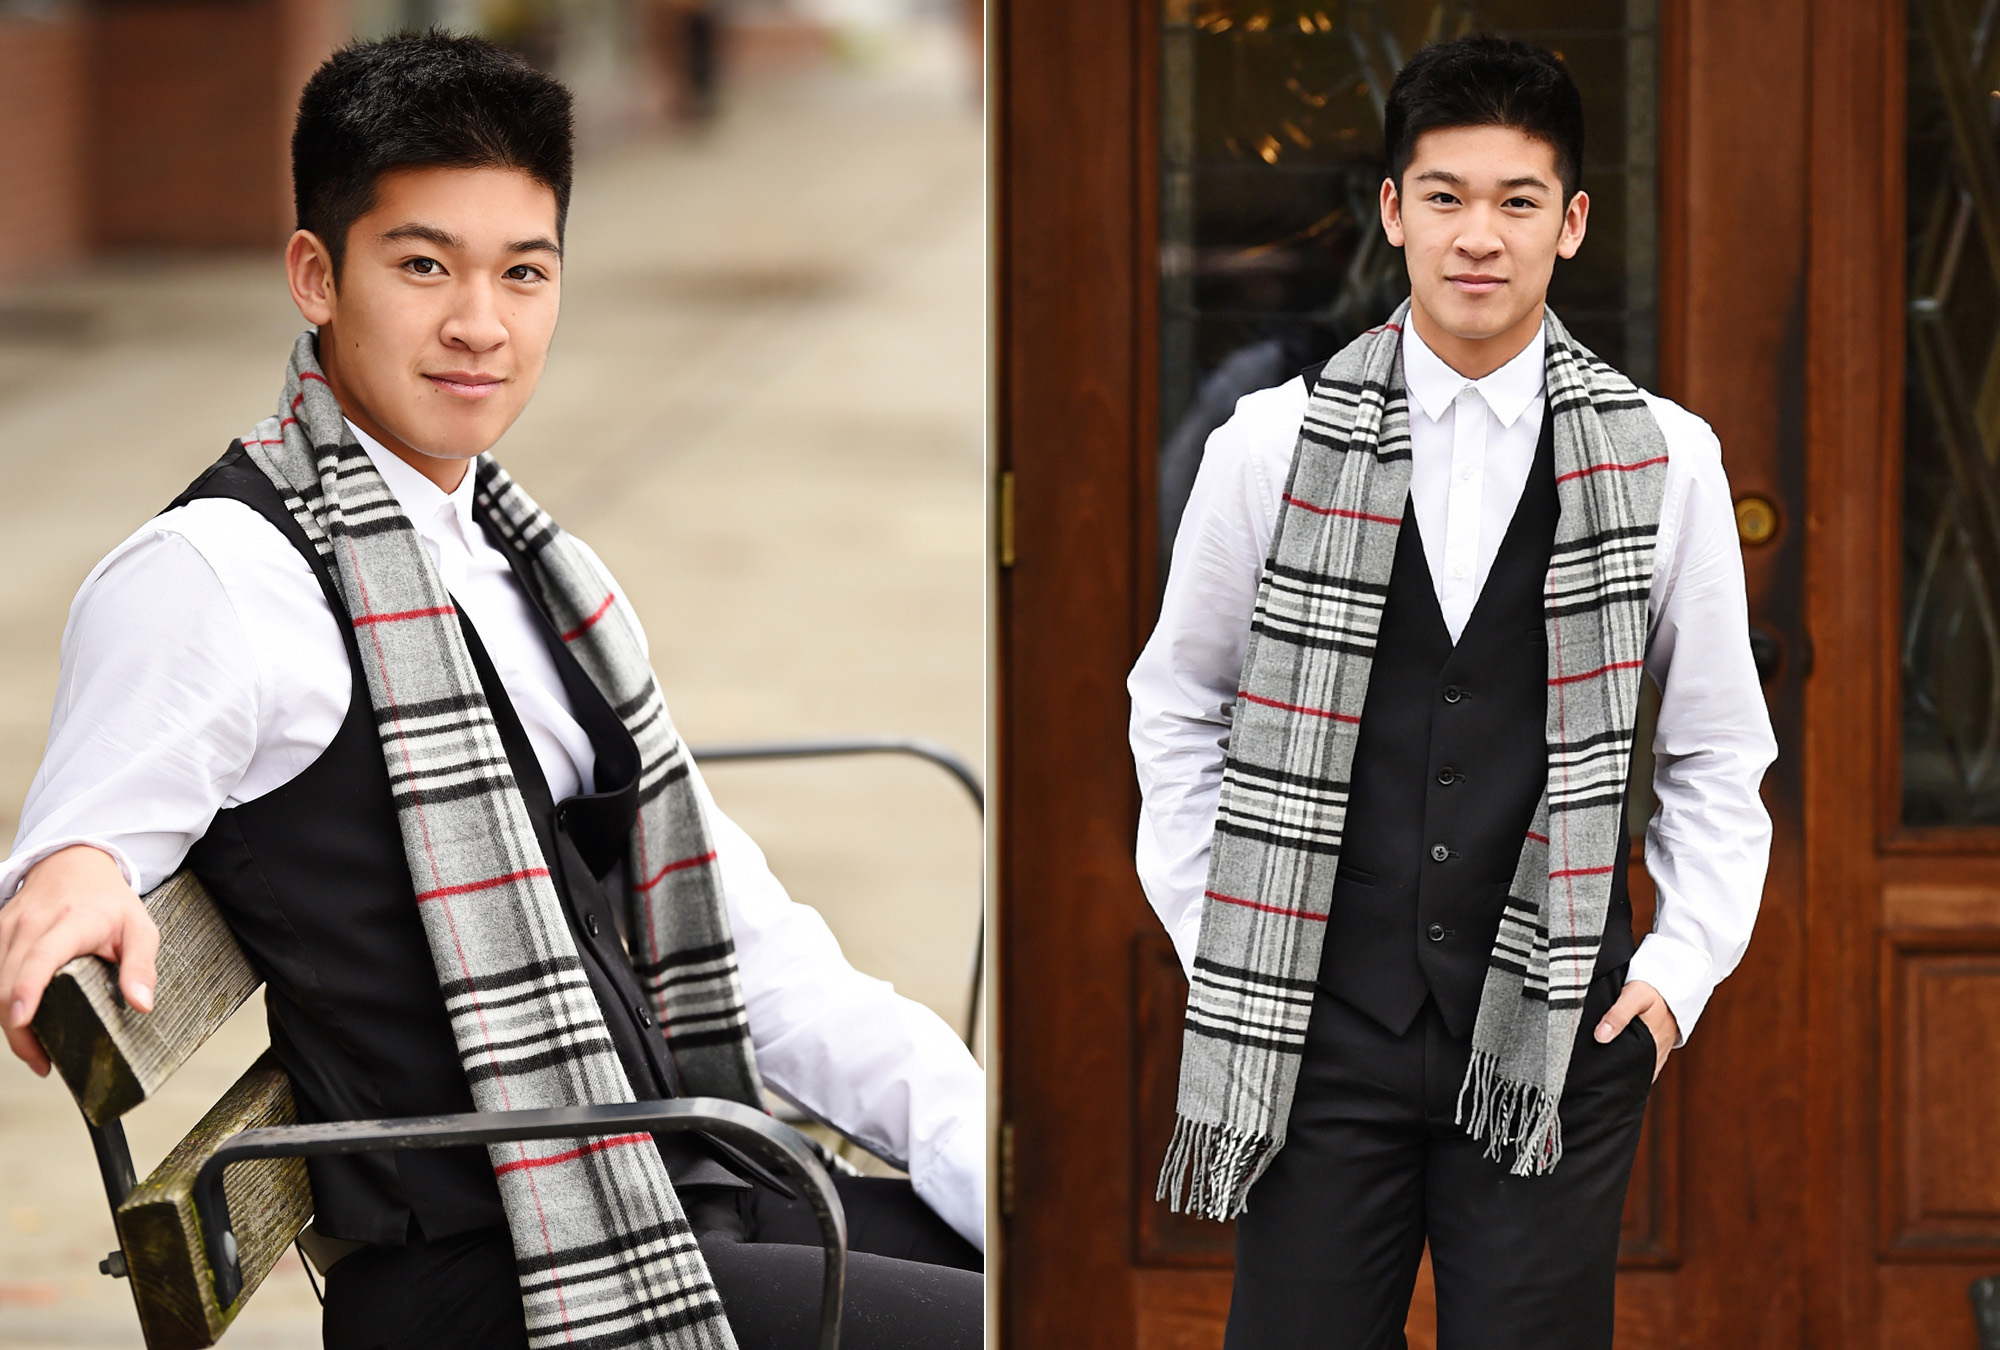 Cool Senior Pictures of Asian Amercian boy in scarf_Studio B Portraits_Jib.jpg